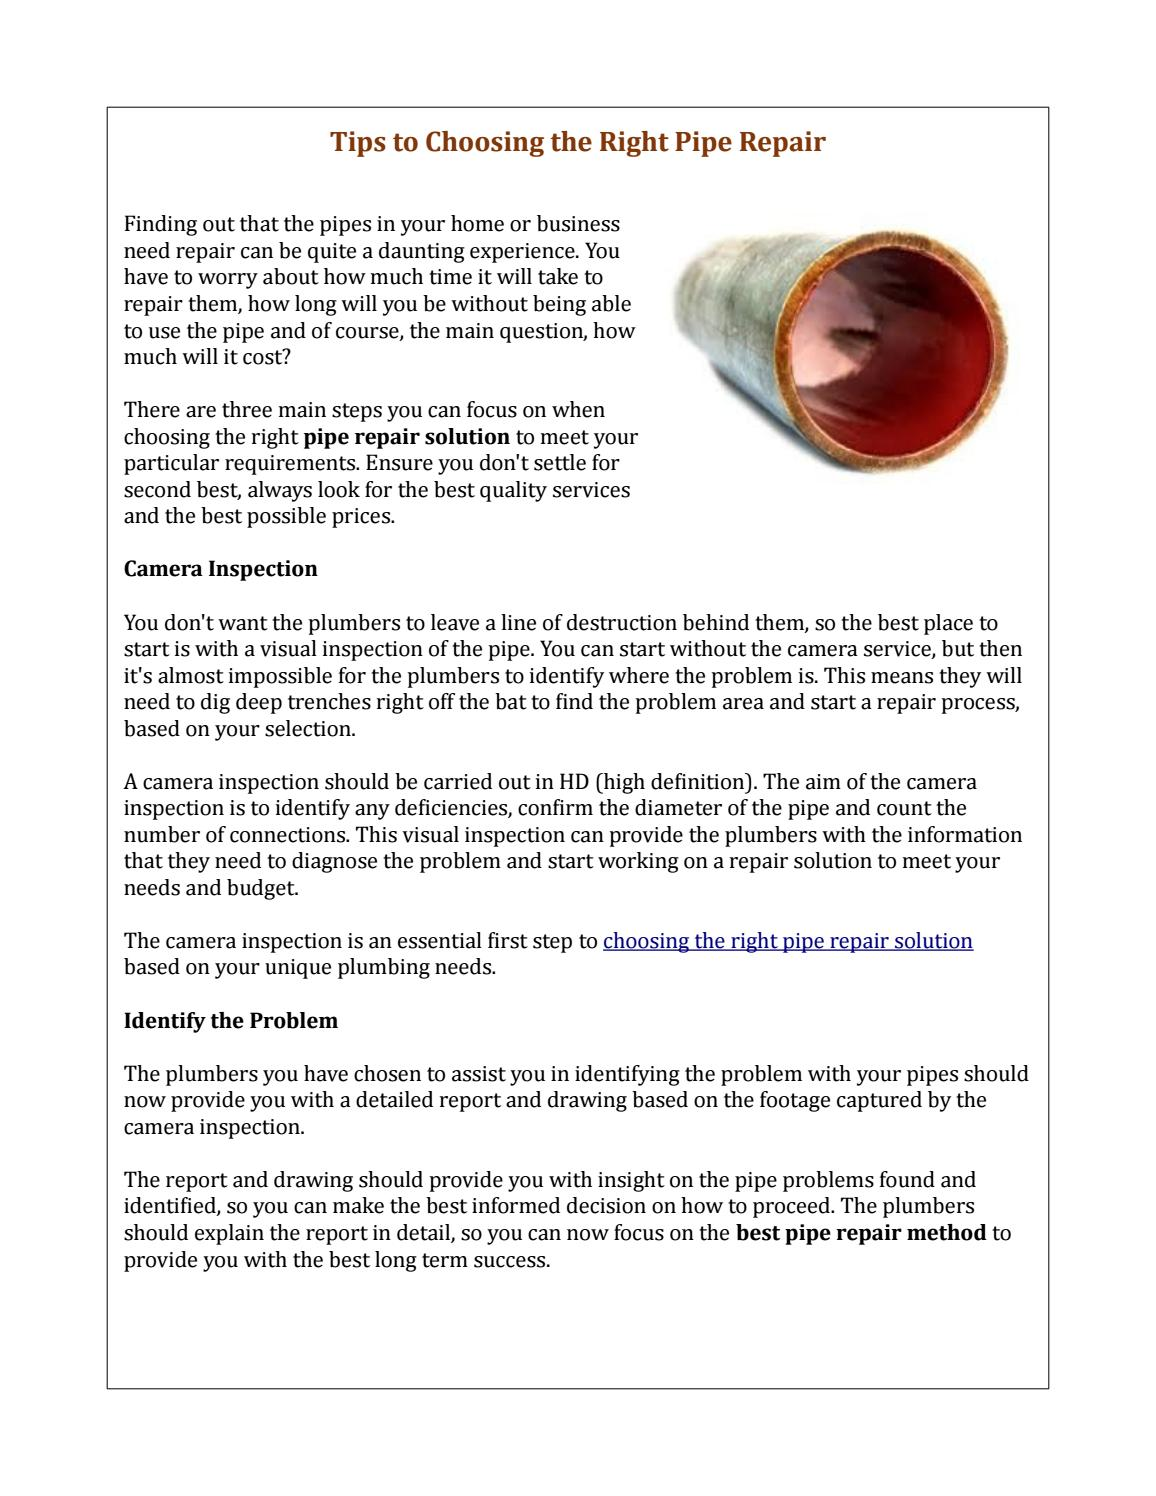 Tips To Choosing The Right Pipe Repair By Nu Flow Tech Issuu